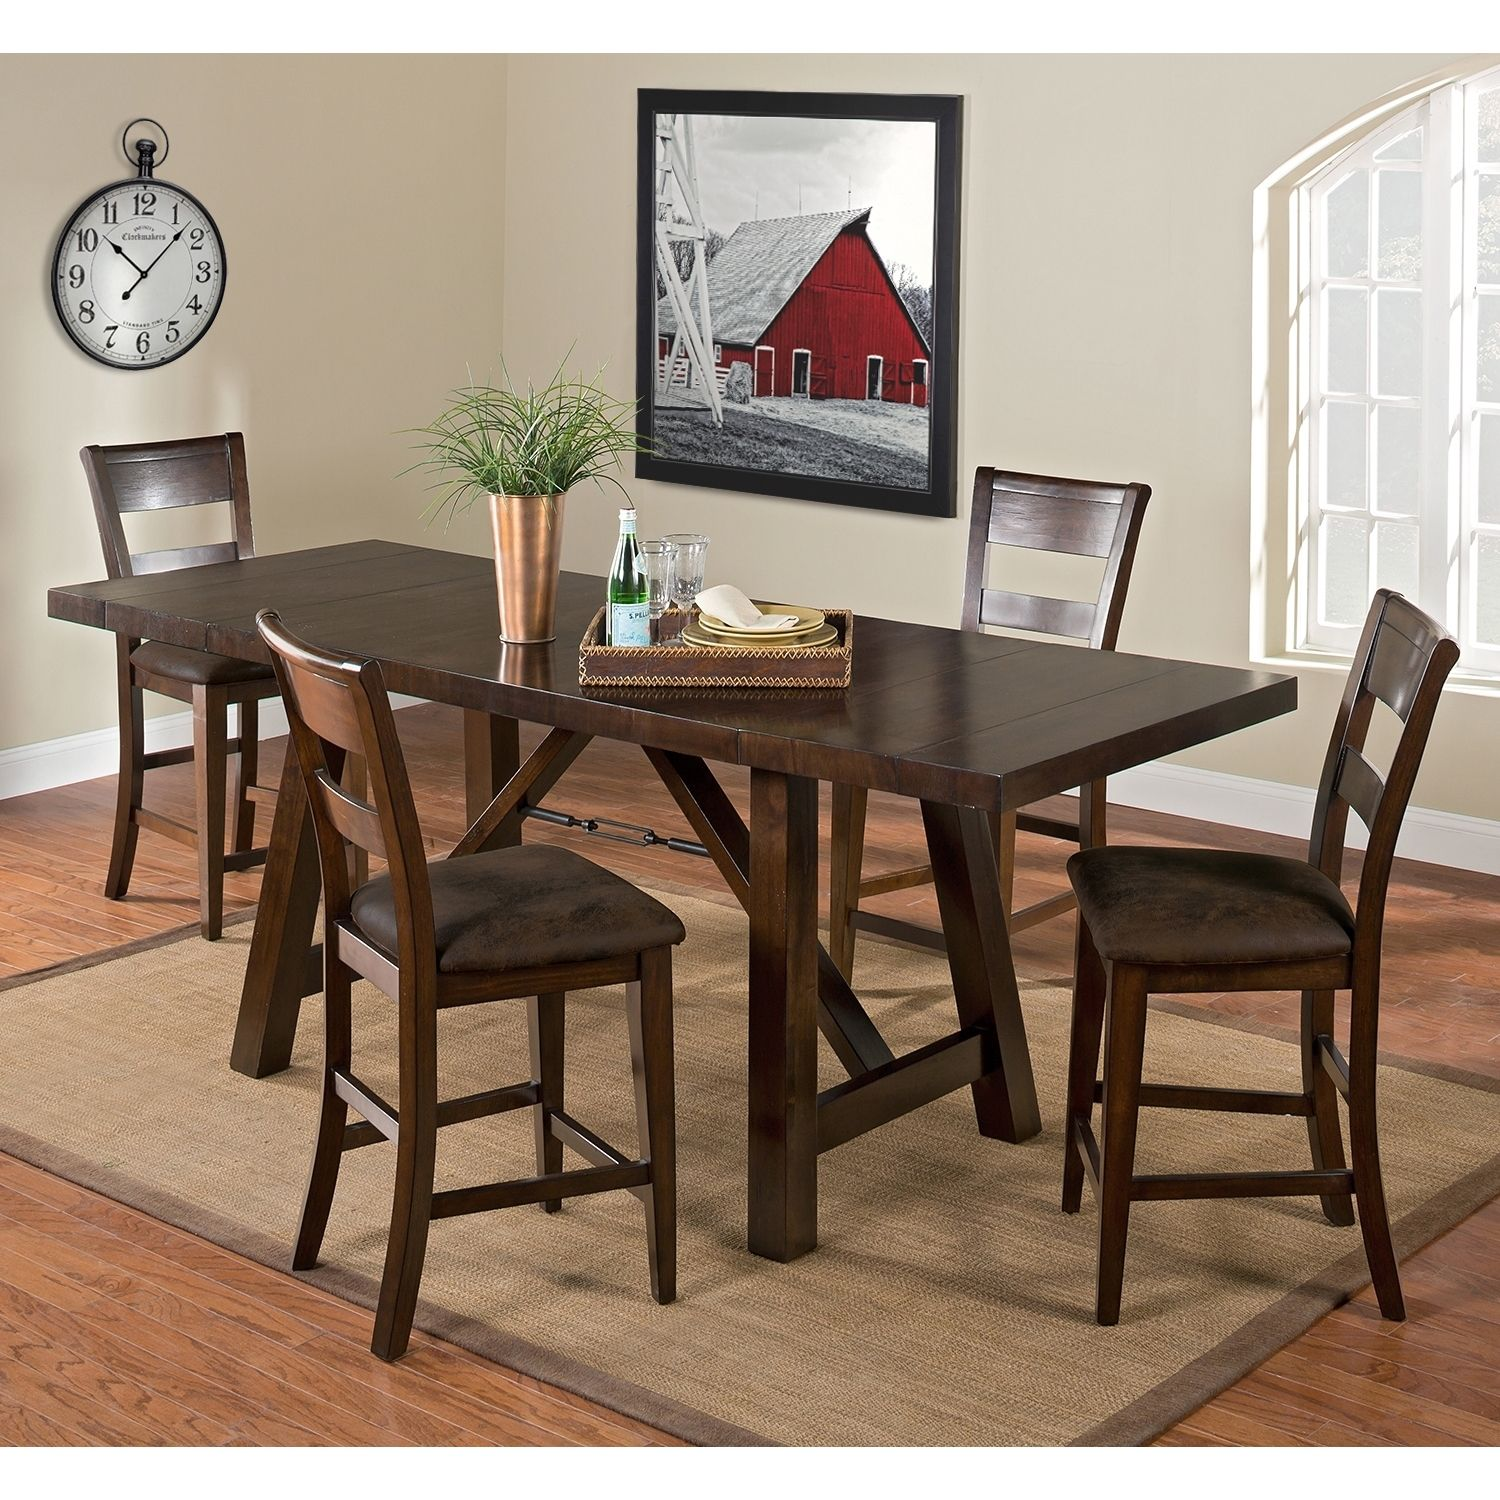 Everett Dining Room Counter Height Table Value City Furniture Dining Room Furniture Furniture Dining Room Inspiration